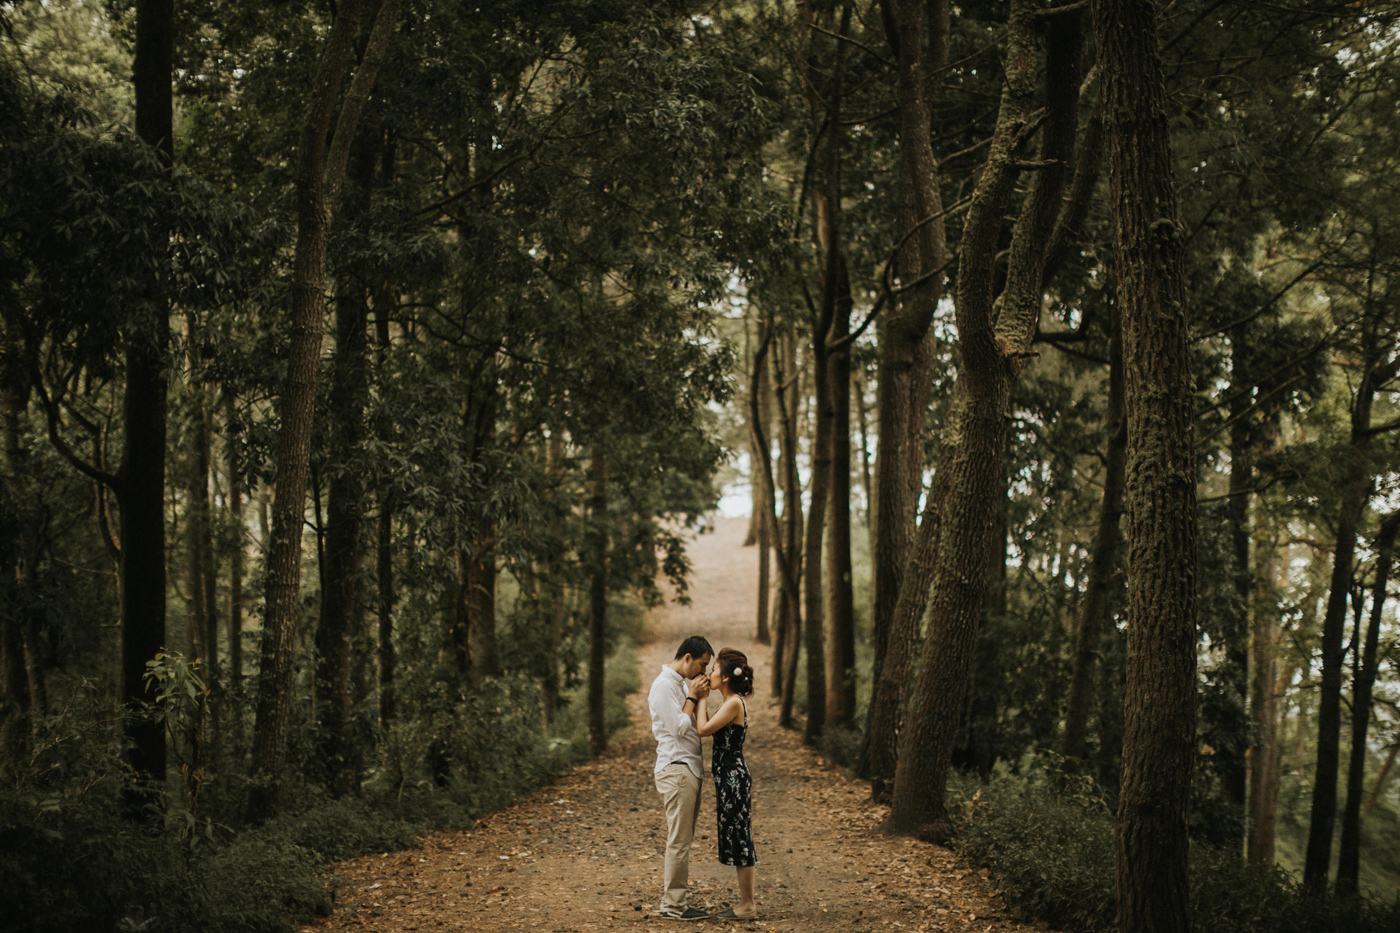 kintamani prewedding Karen Lawrence connection session iluminen bali wedding photographer destination photography mountain batur tibumana waterfall